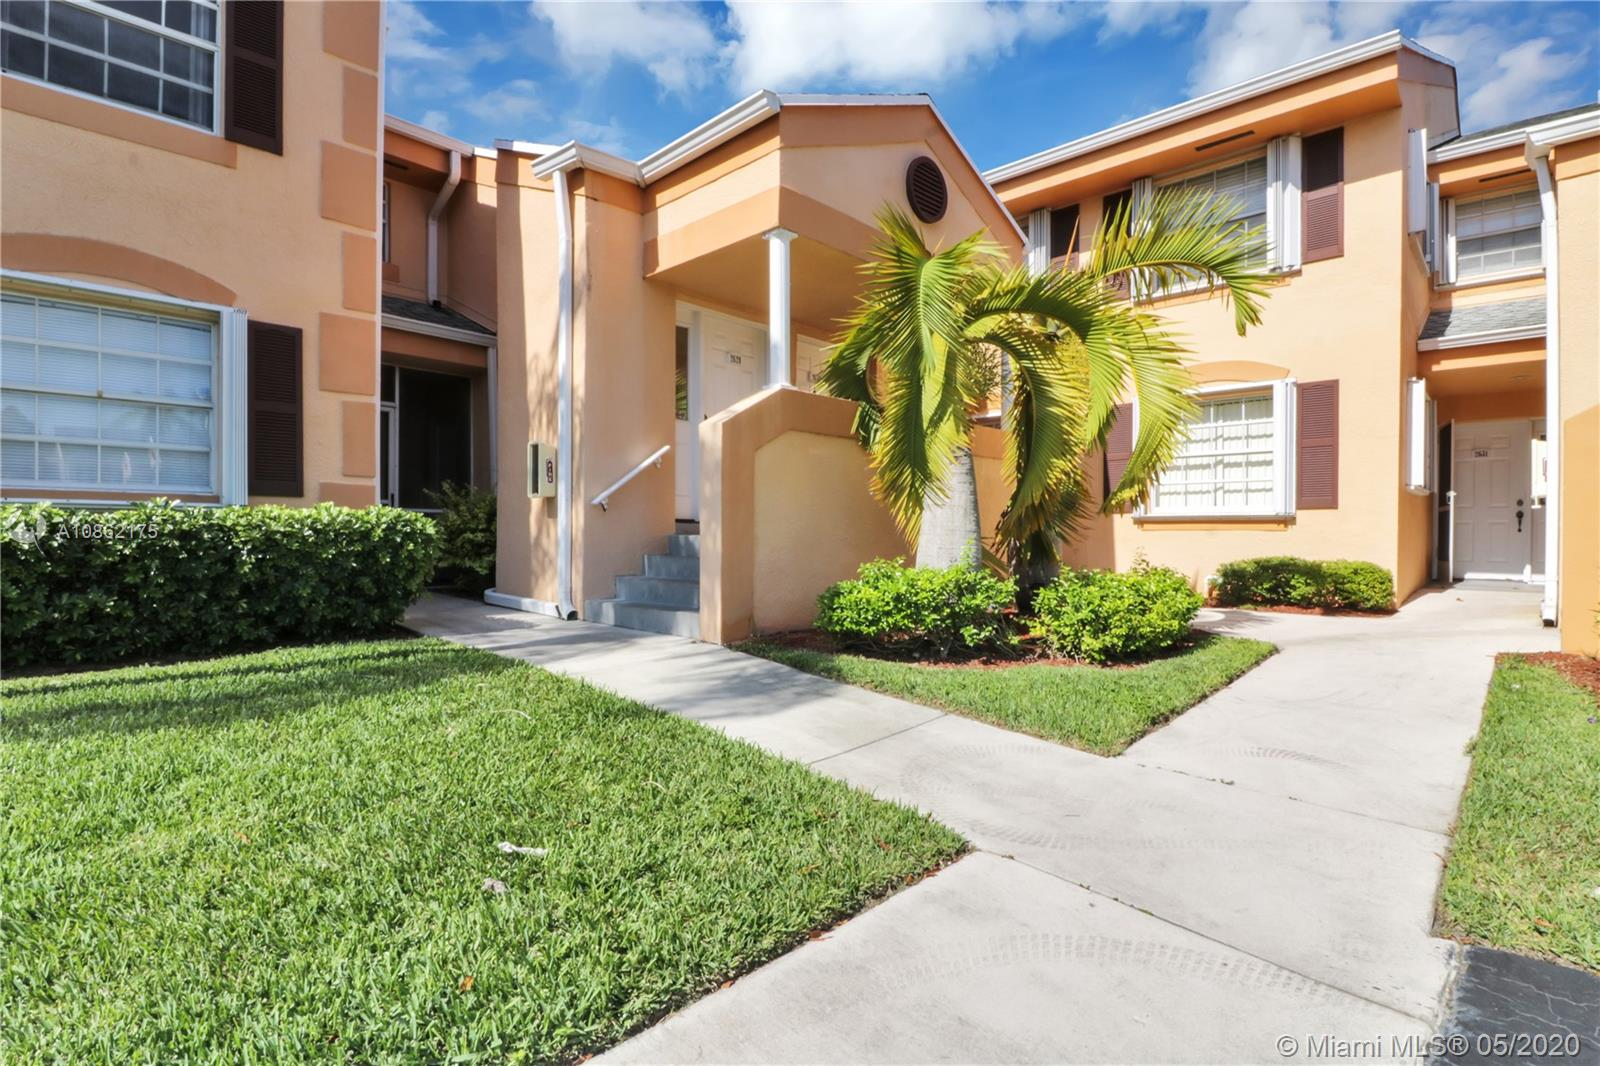 2628 SE 19th Ct #202-C, Homestead, FL 33035 - Homestead, FL real estate listing